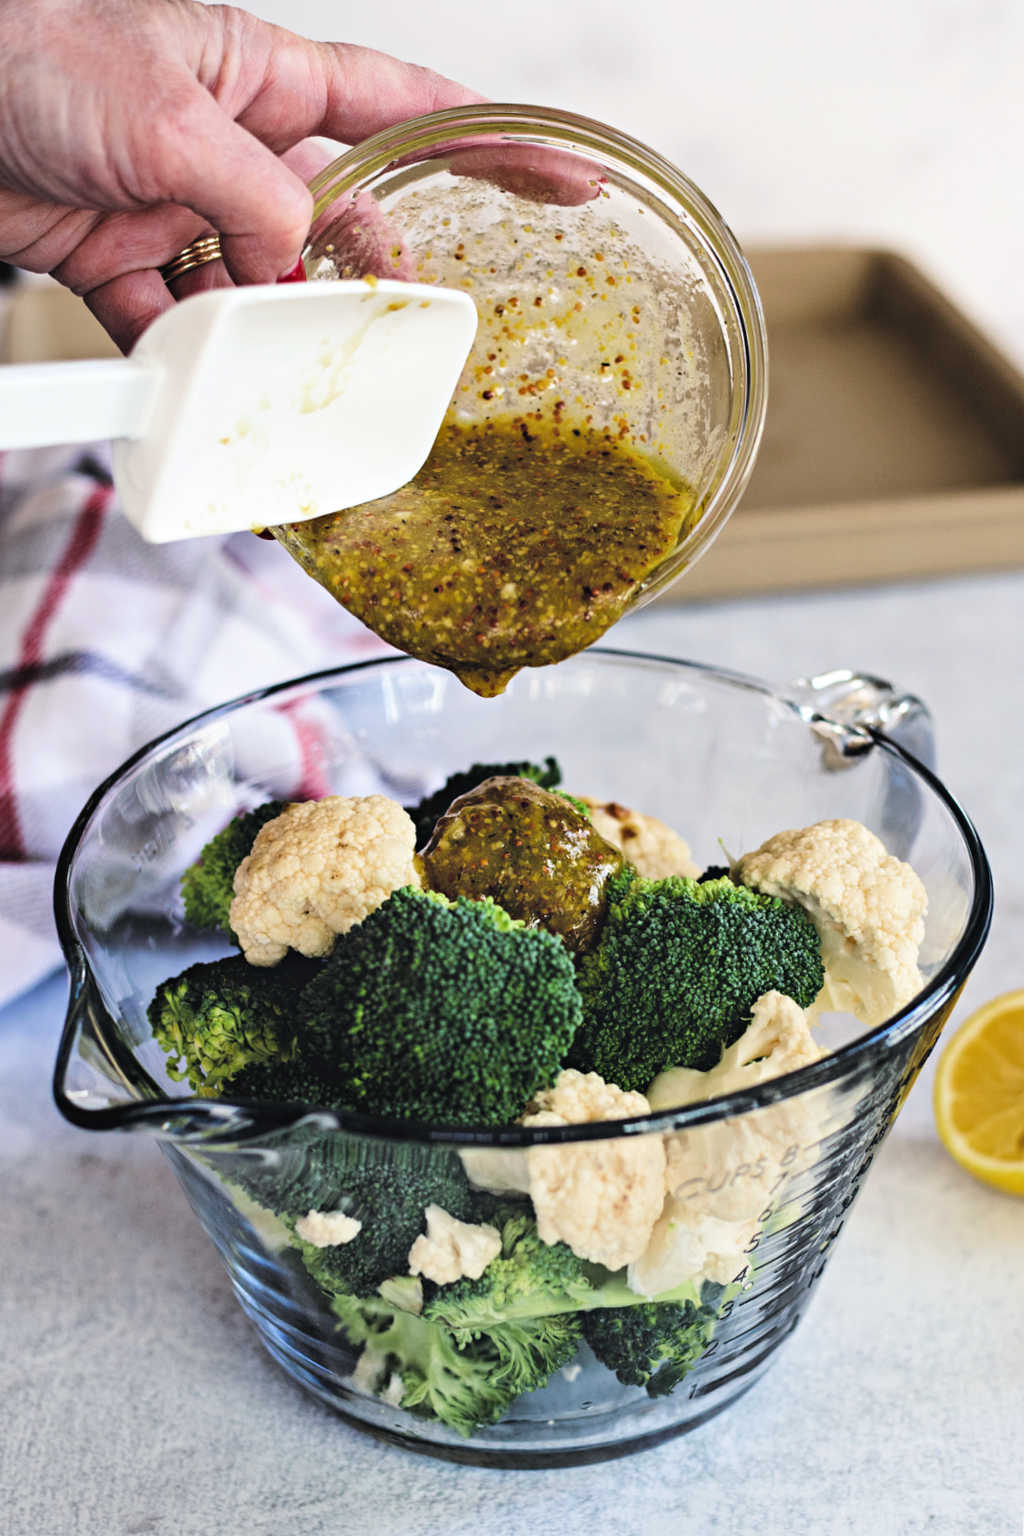 pouring mustard sauce on broccoli and cauliflower in a mixing bowl